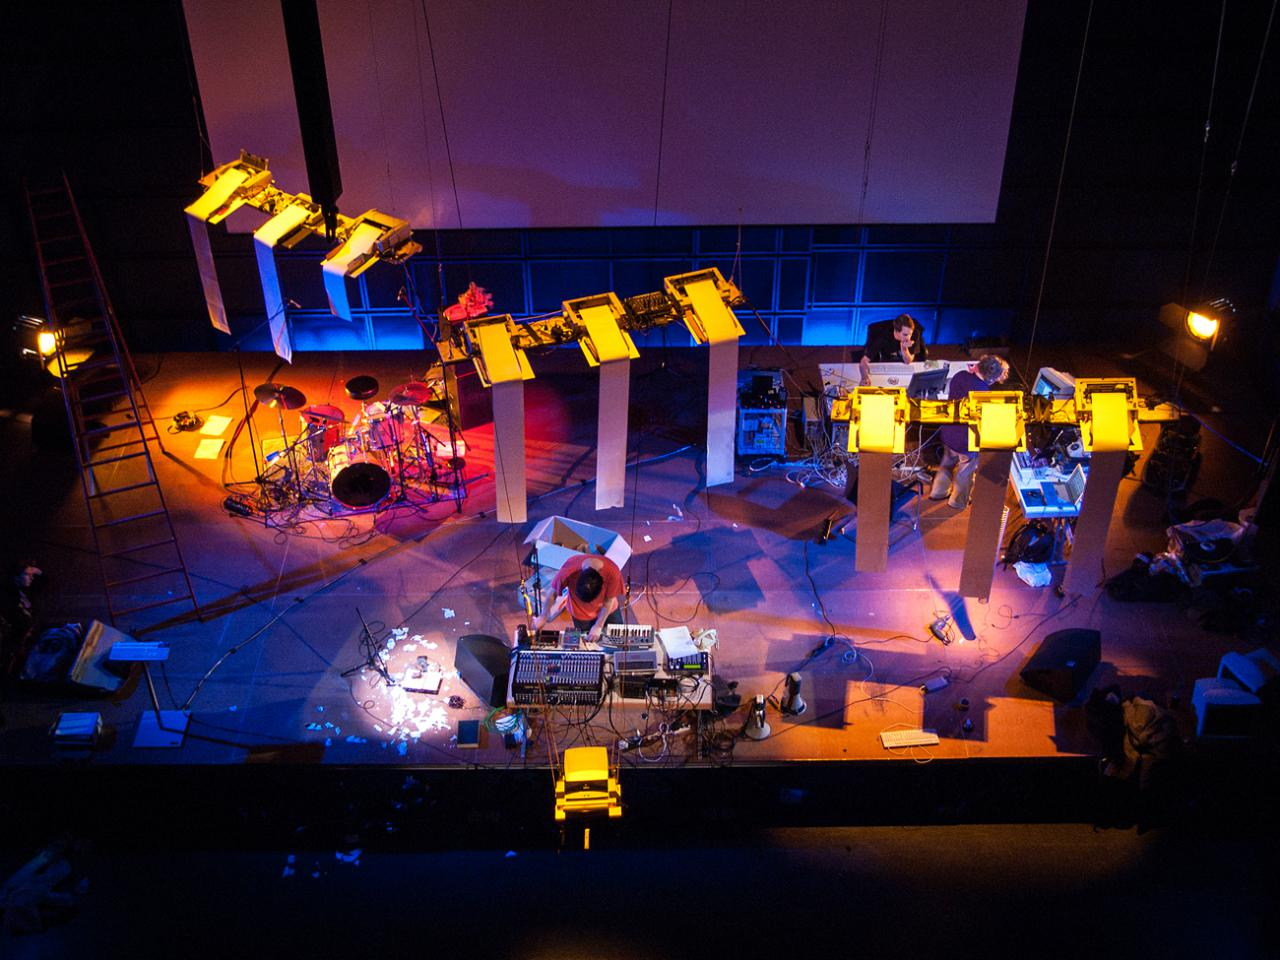 Concert at the ZKM_Media Theater